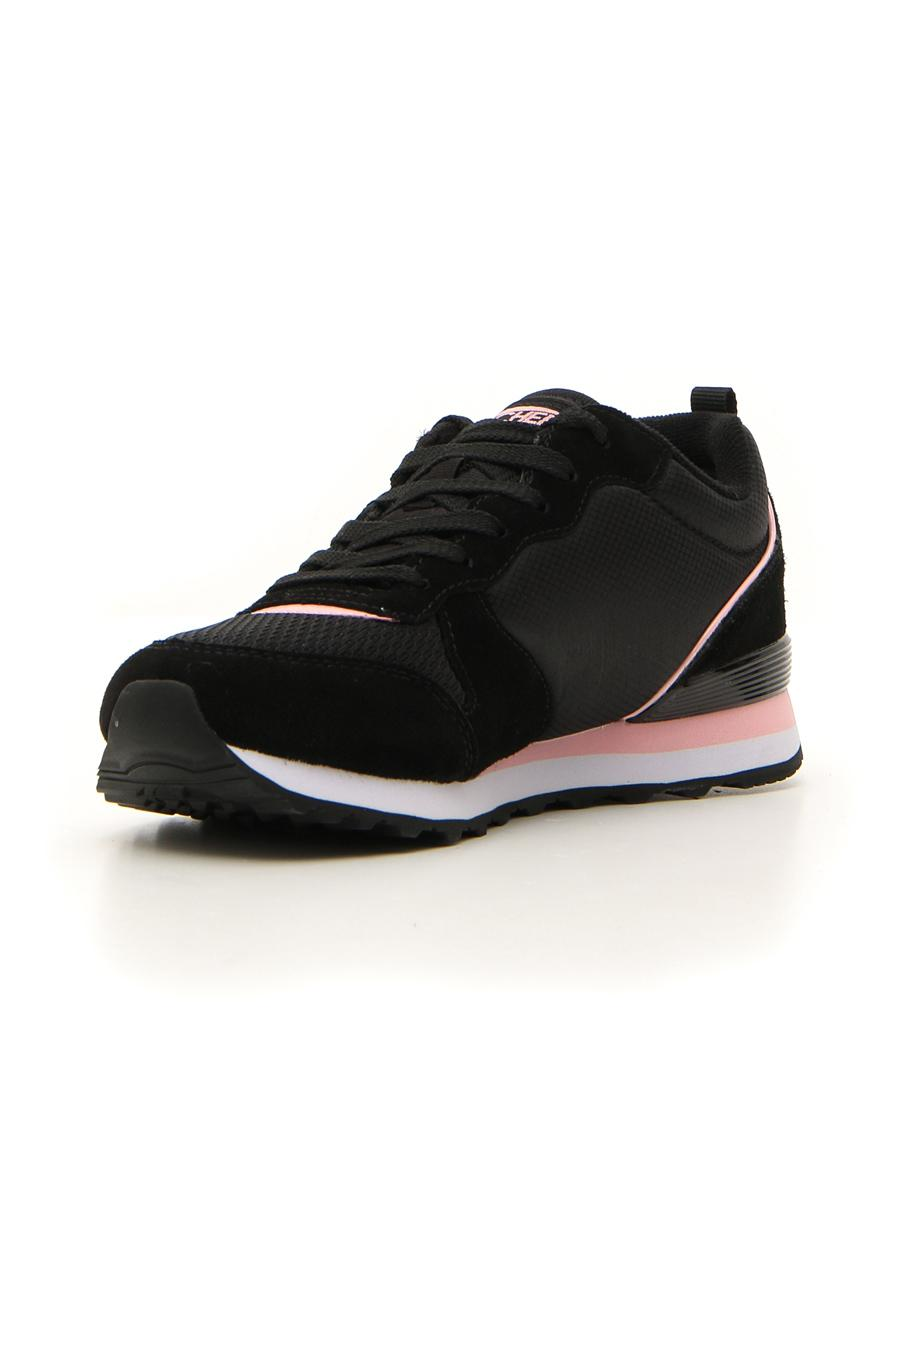 SNEAKERS SKECHERS STEP N FLY donna nero | Pittarello